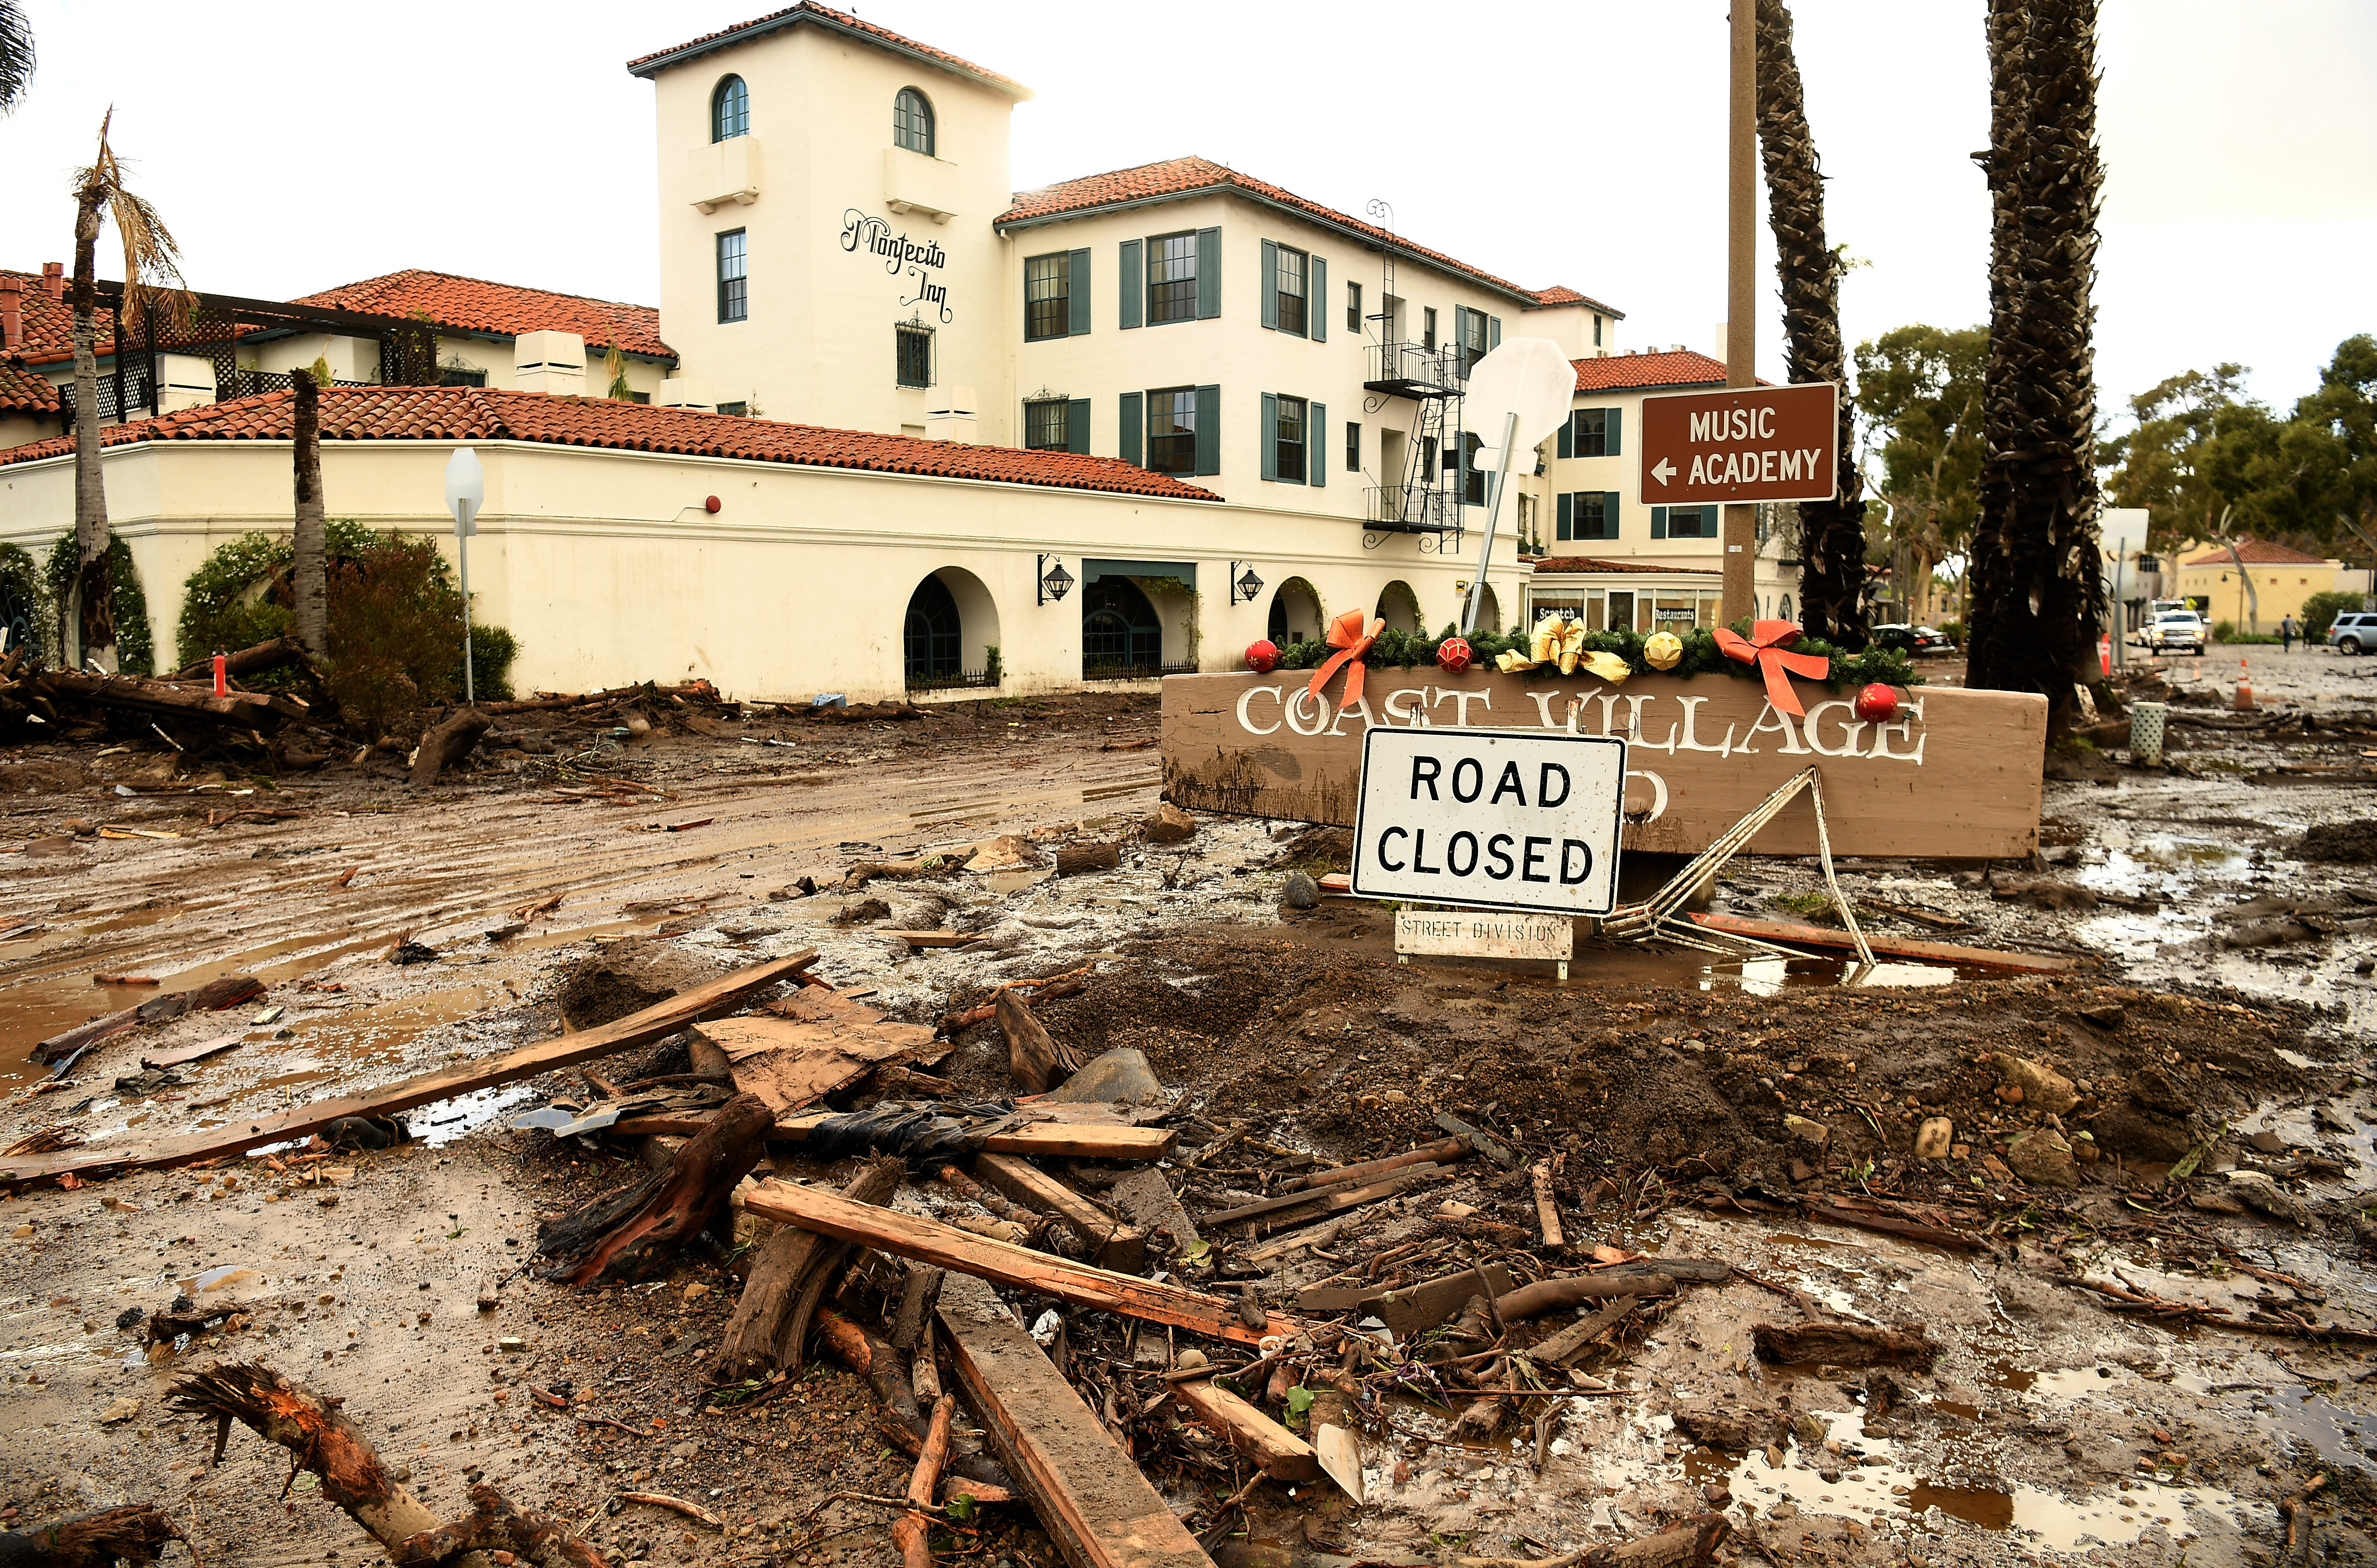 Mud and debris gather outside the Montecito Inn along Olive Mill Road in Montecito after a major storm hit the burn area January 9, 2018 in Montecito, California.